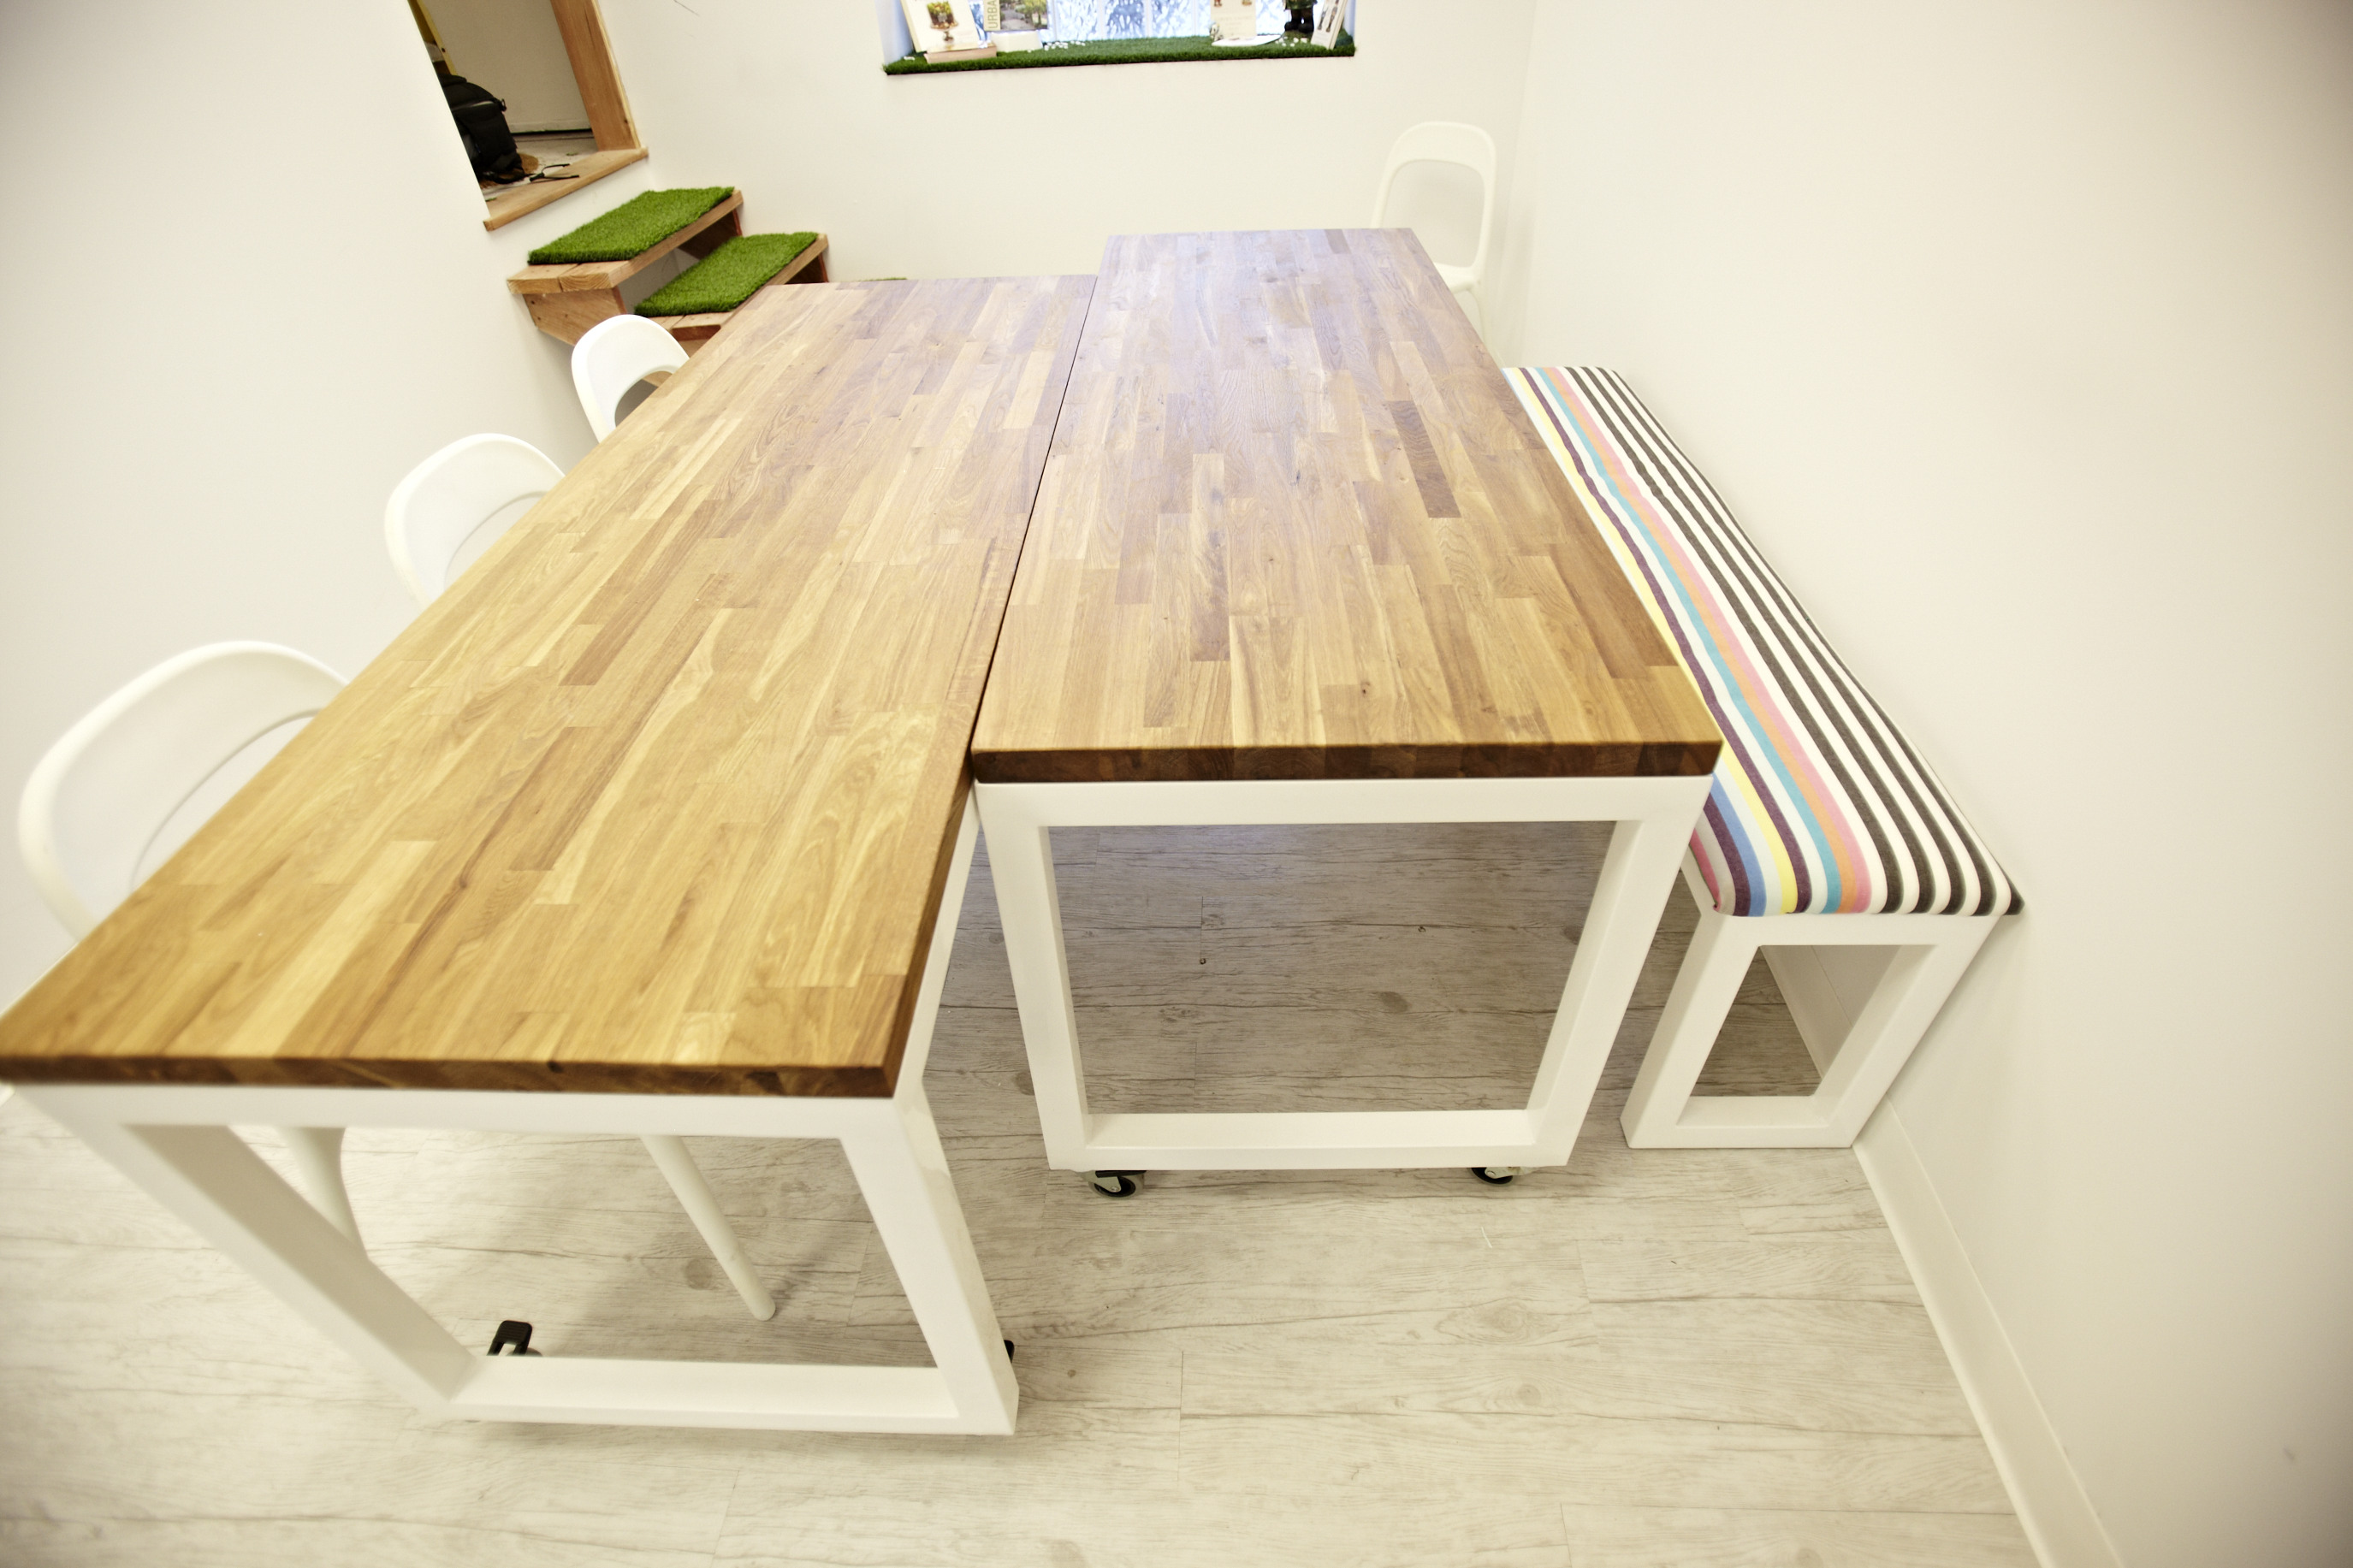 lowbrow craft tables + bench